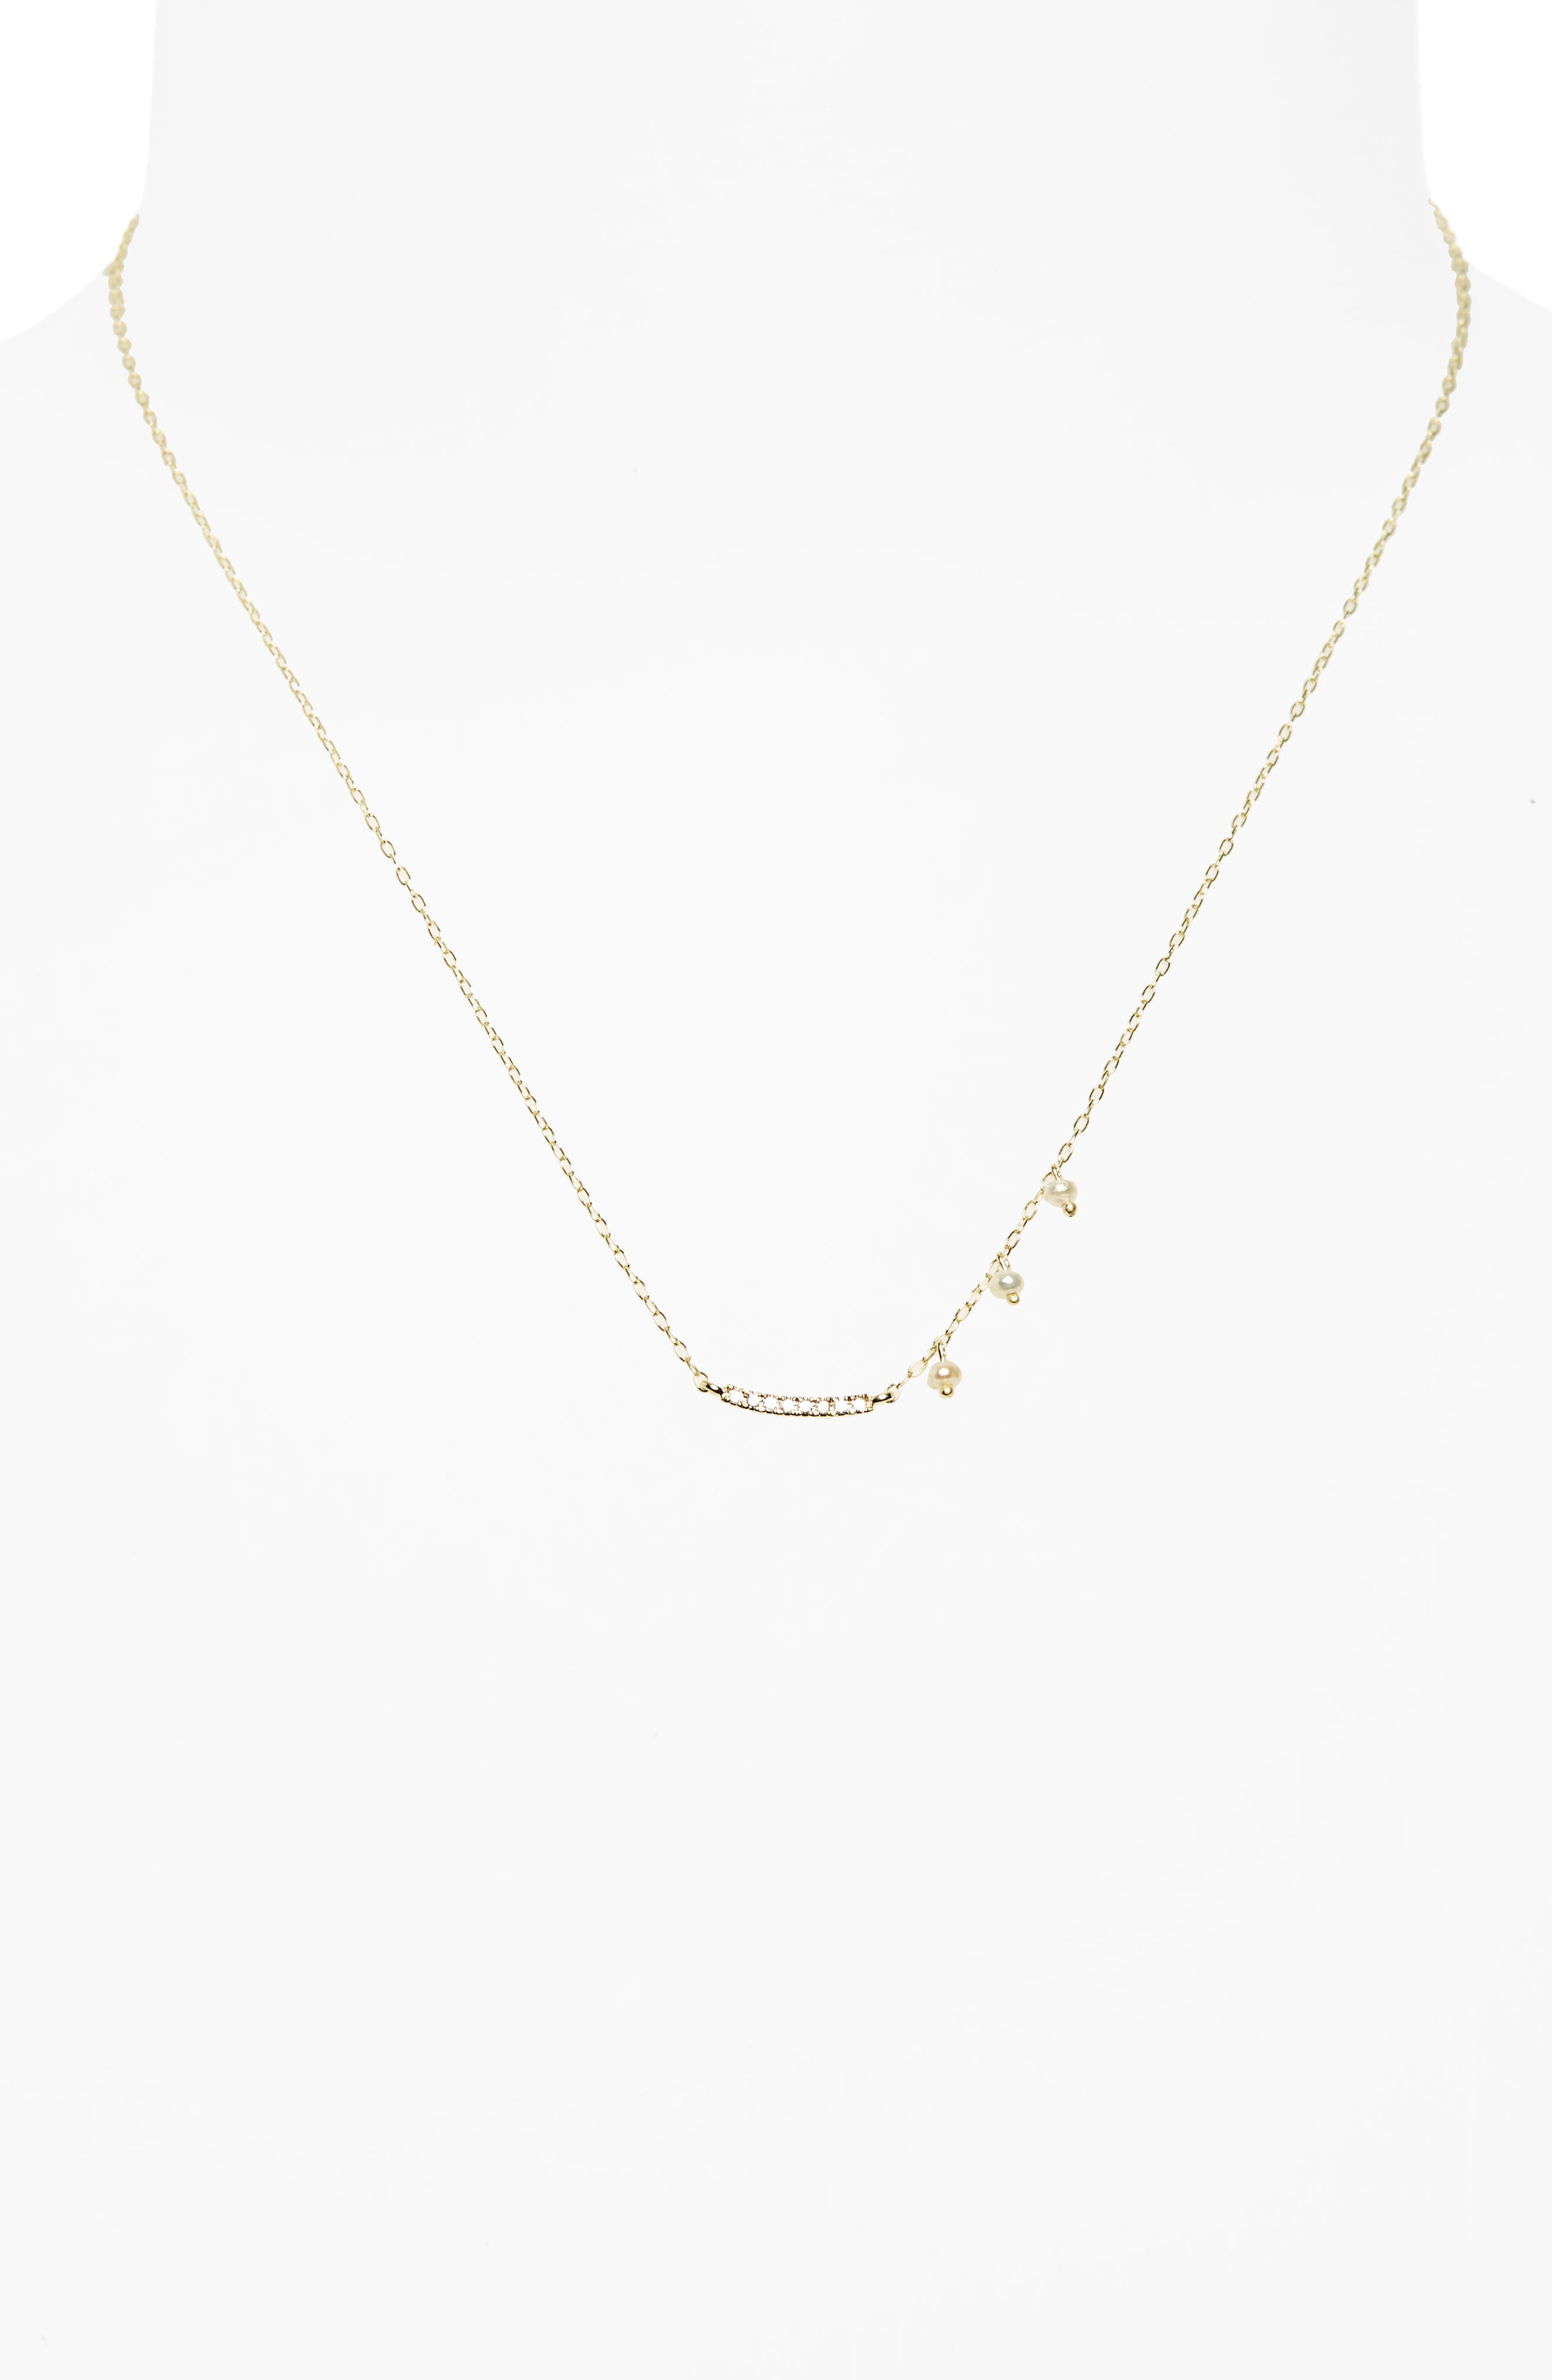 Meira T Diamond & Pearl Bar Pendant Necklace